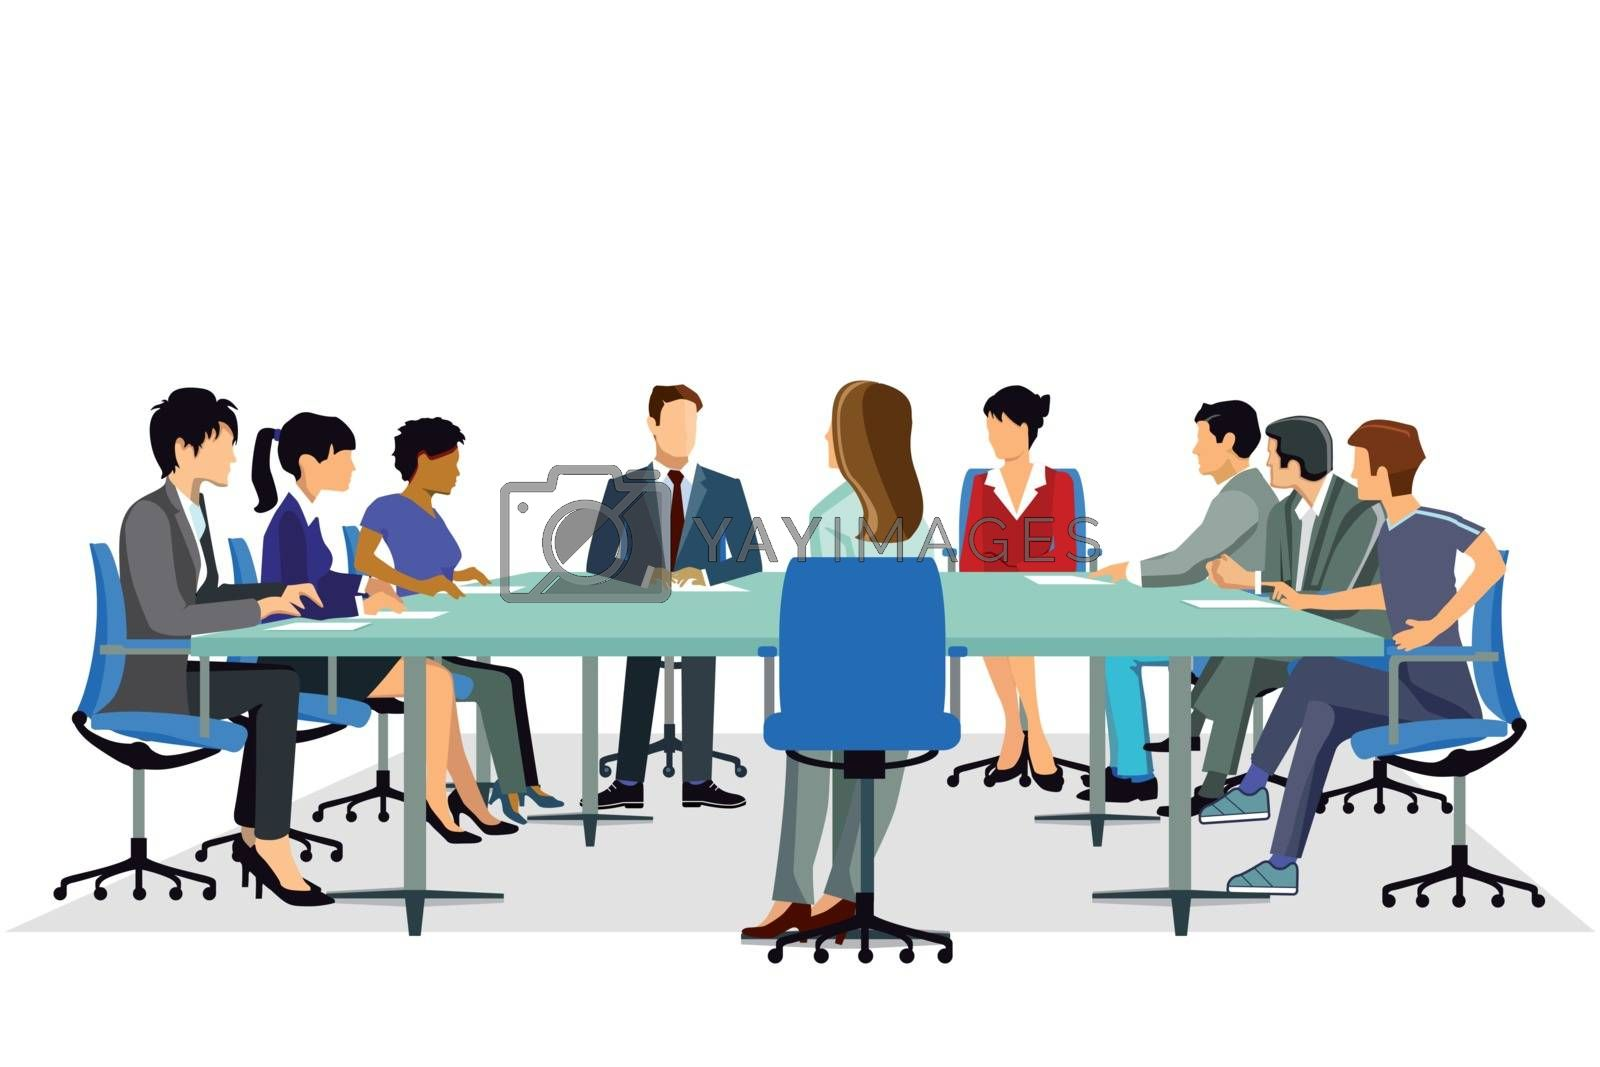 Meeting Conference, Discussion, Seminar